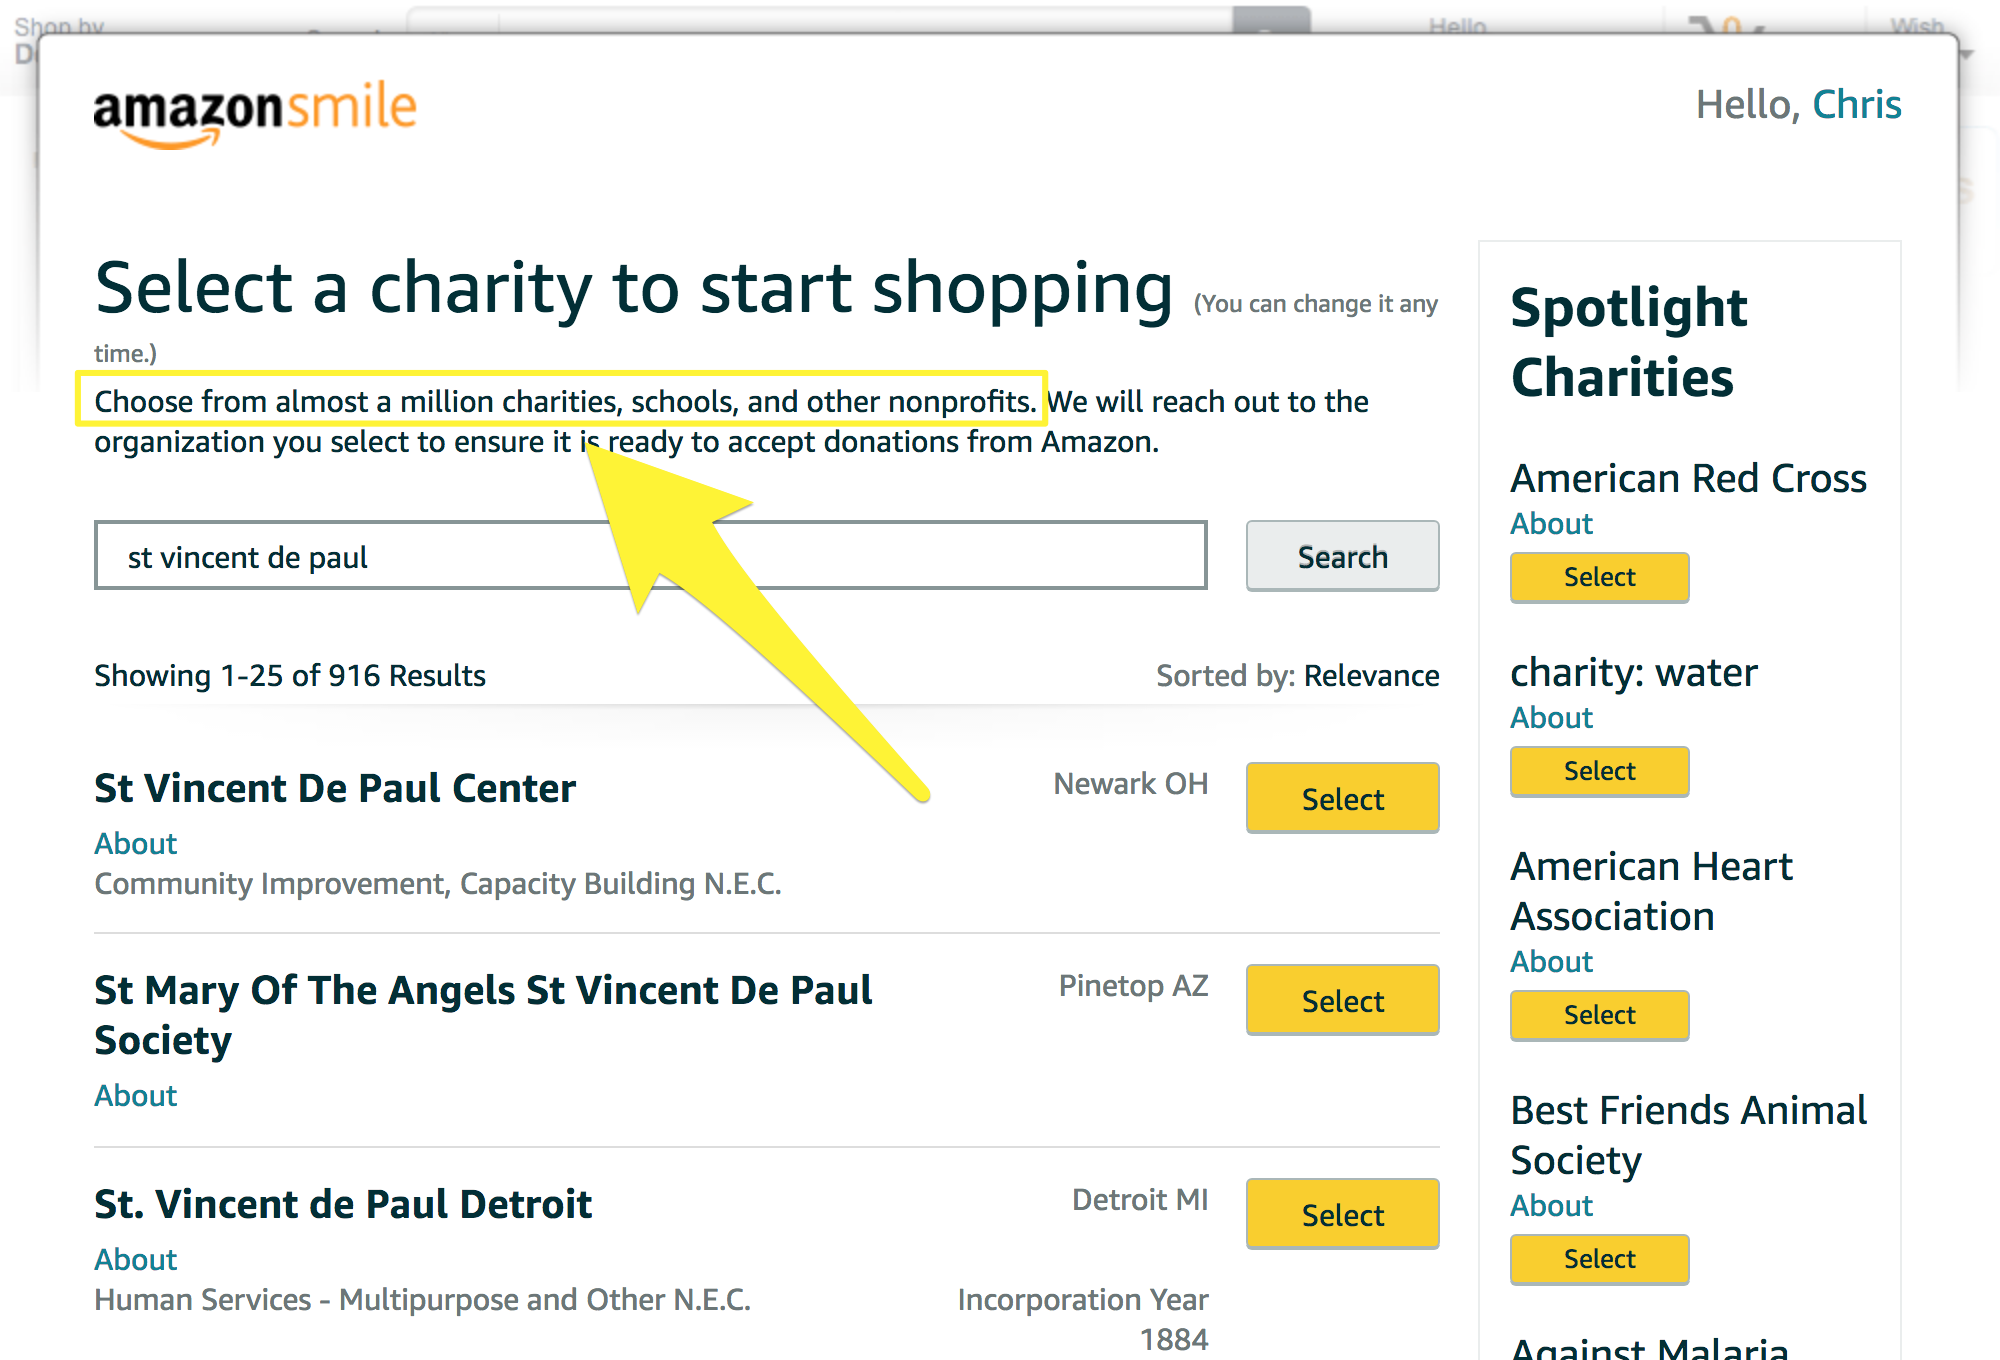 Screenshot showing the charity options on amazon